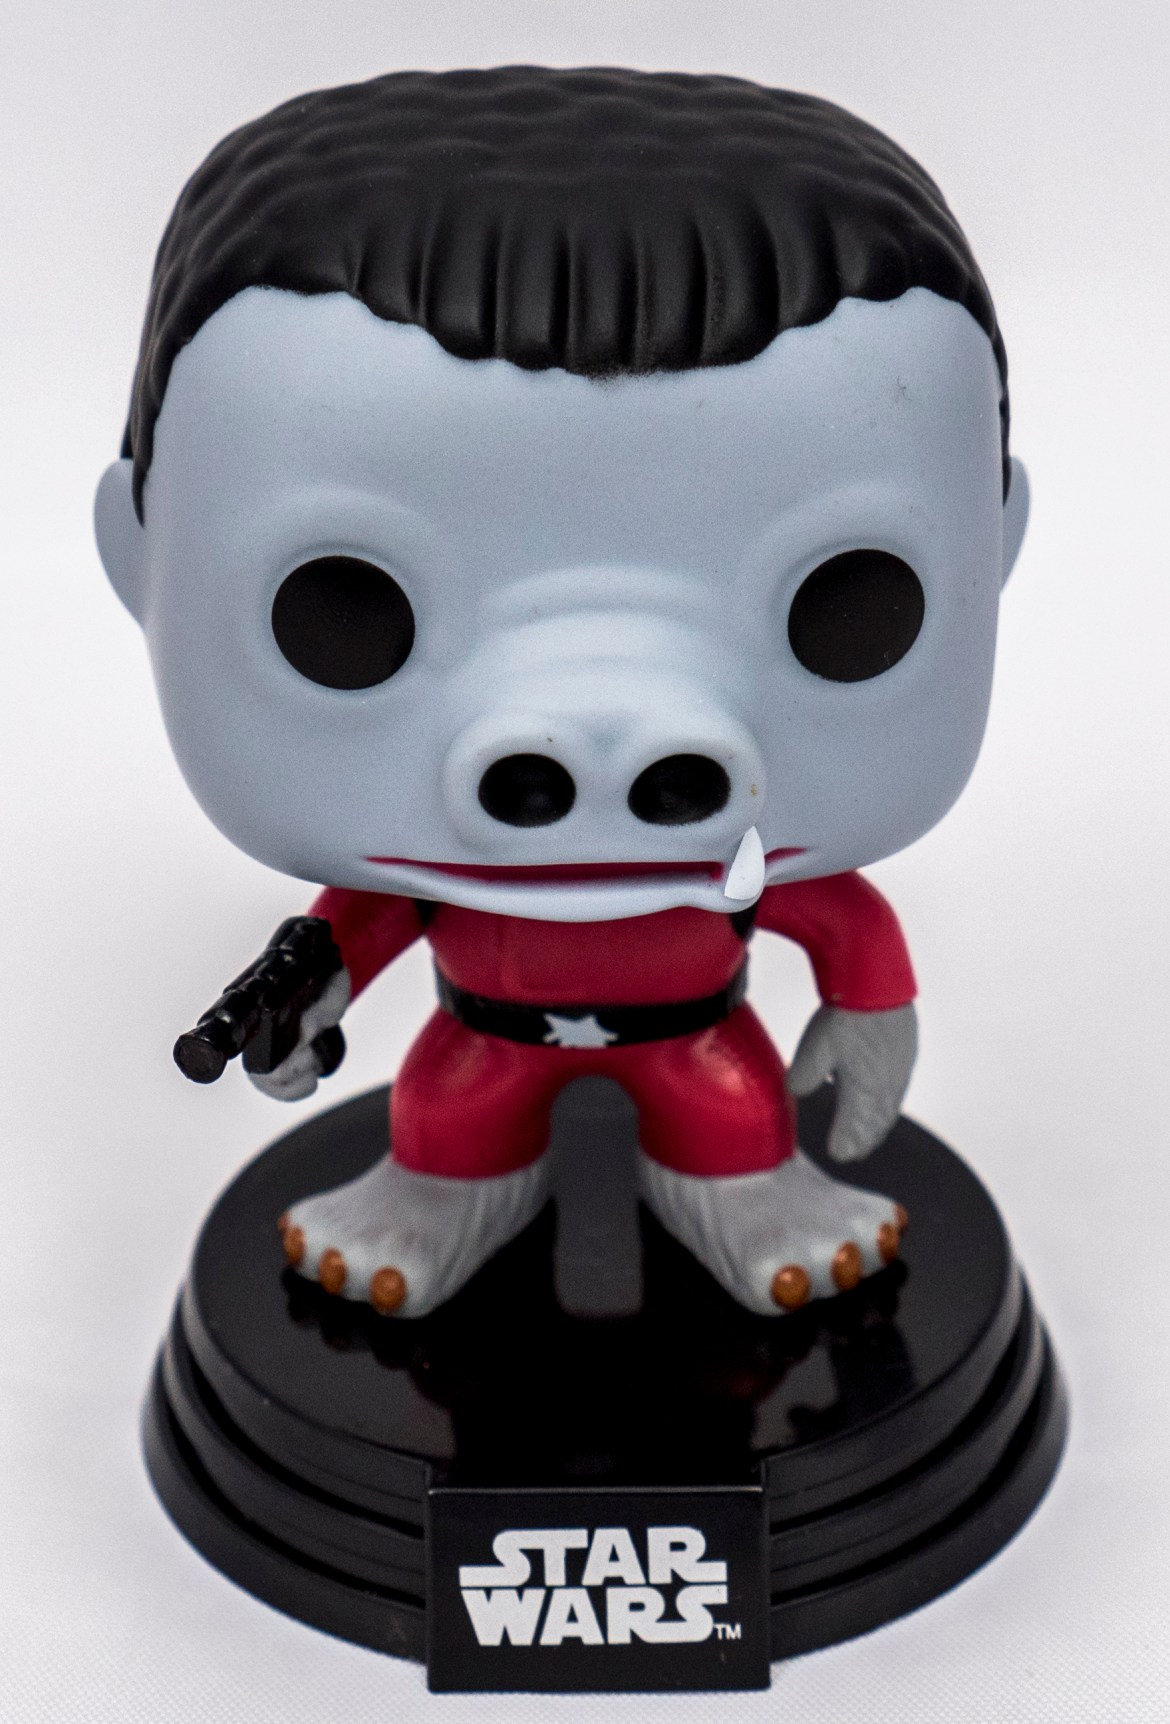 Smuggler's Bounty March 2016 Red Snaggletooth Pop Figure